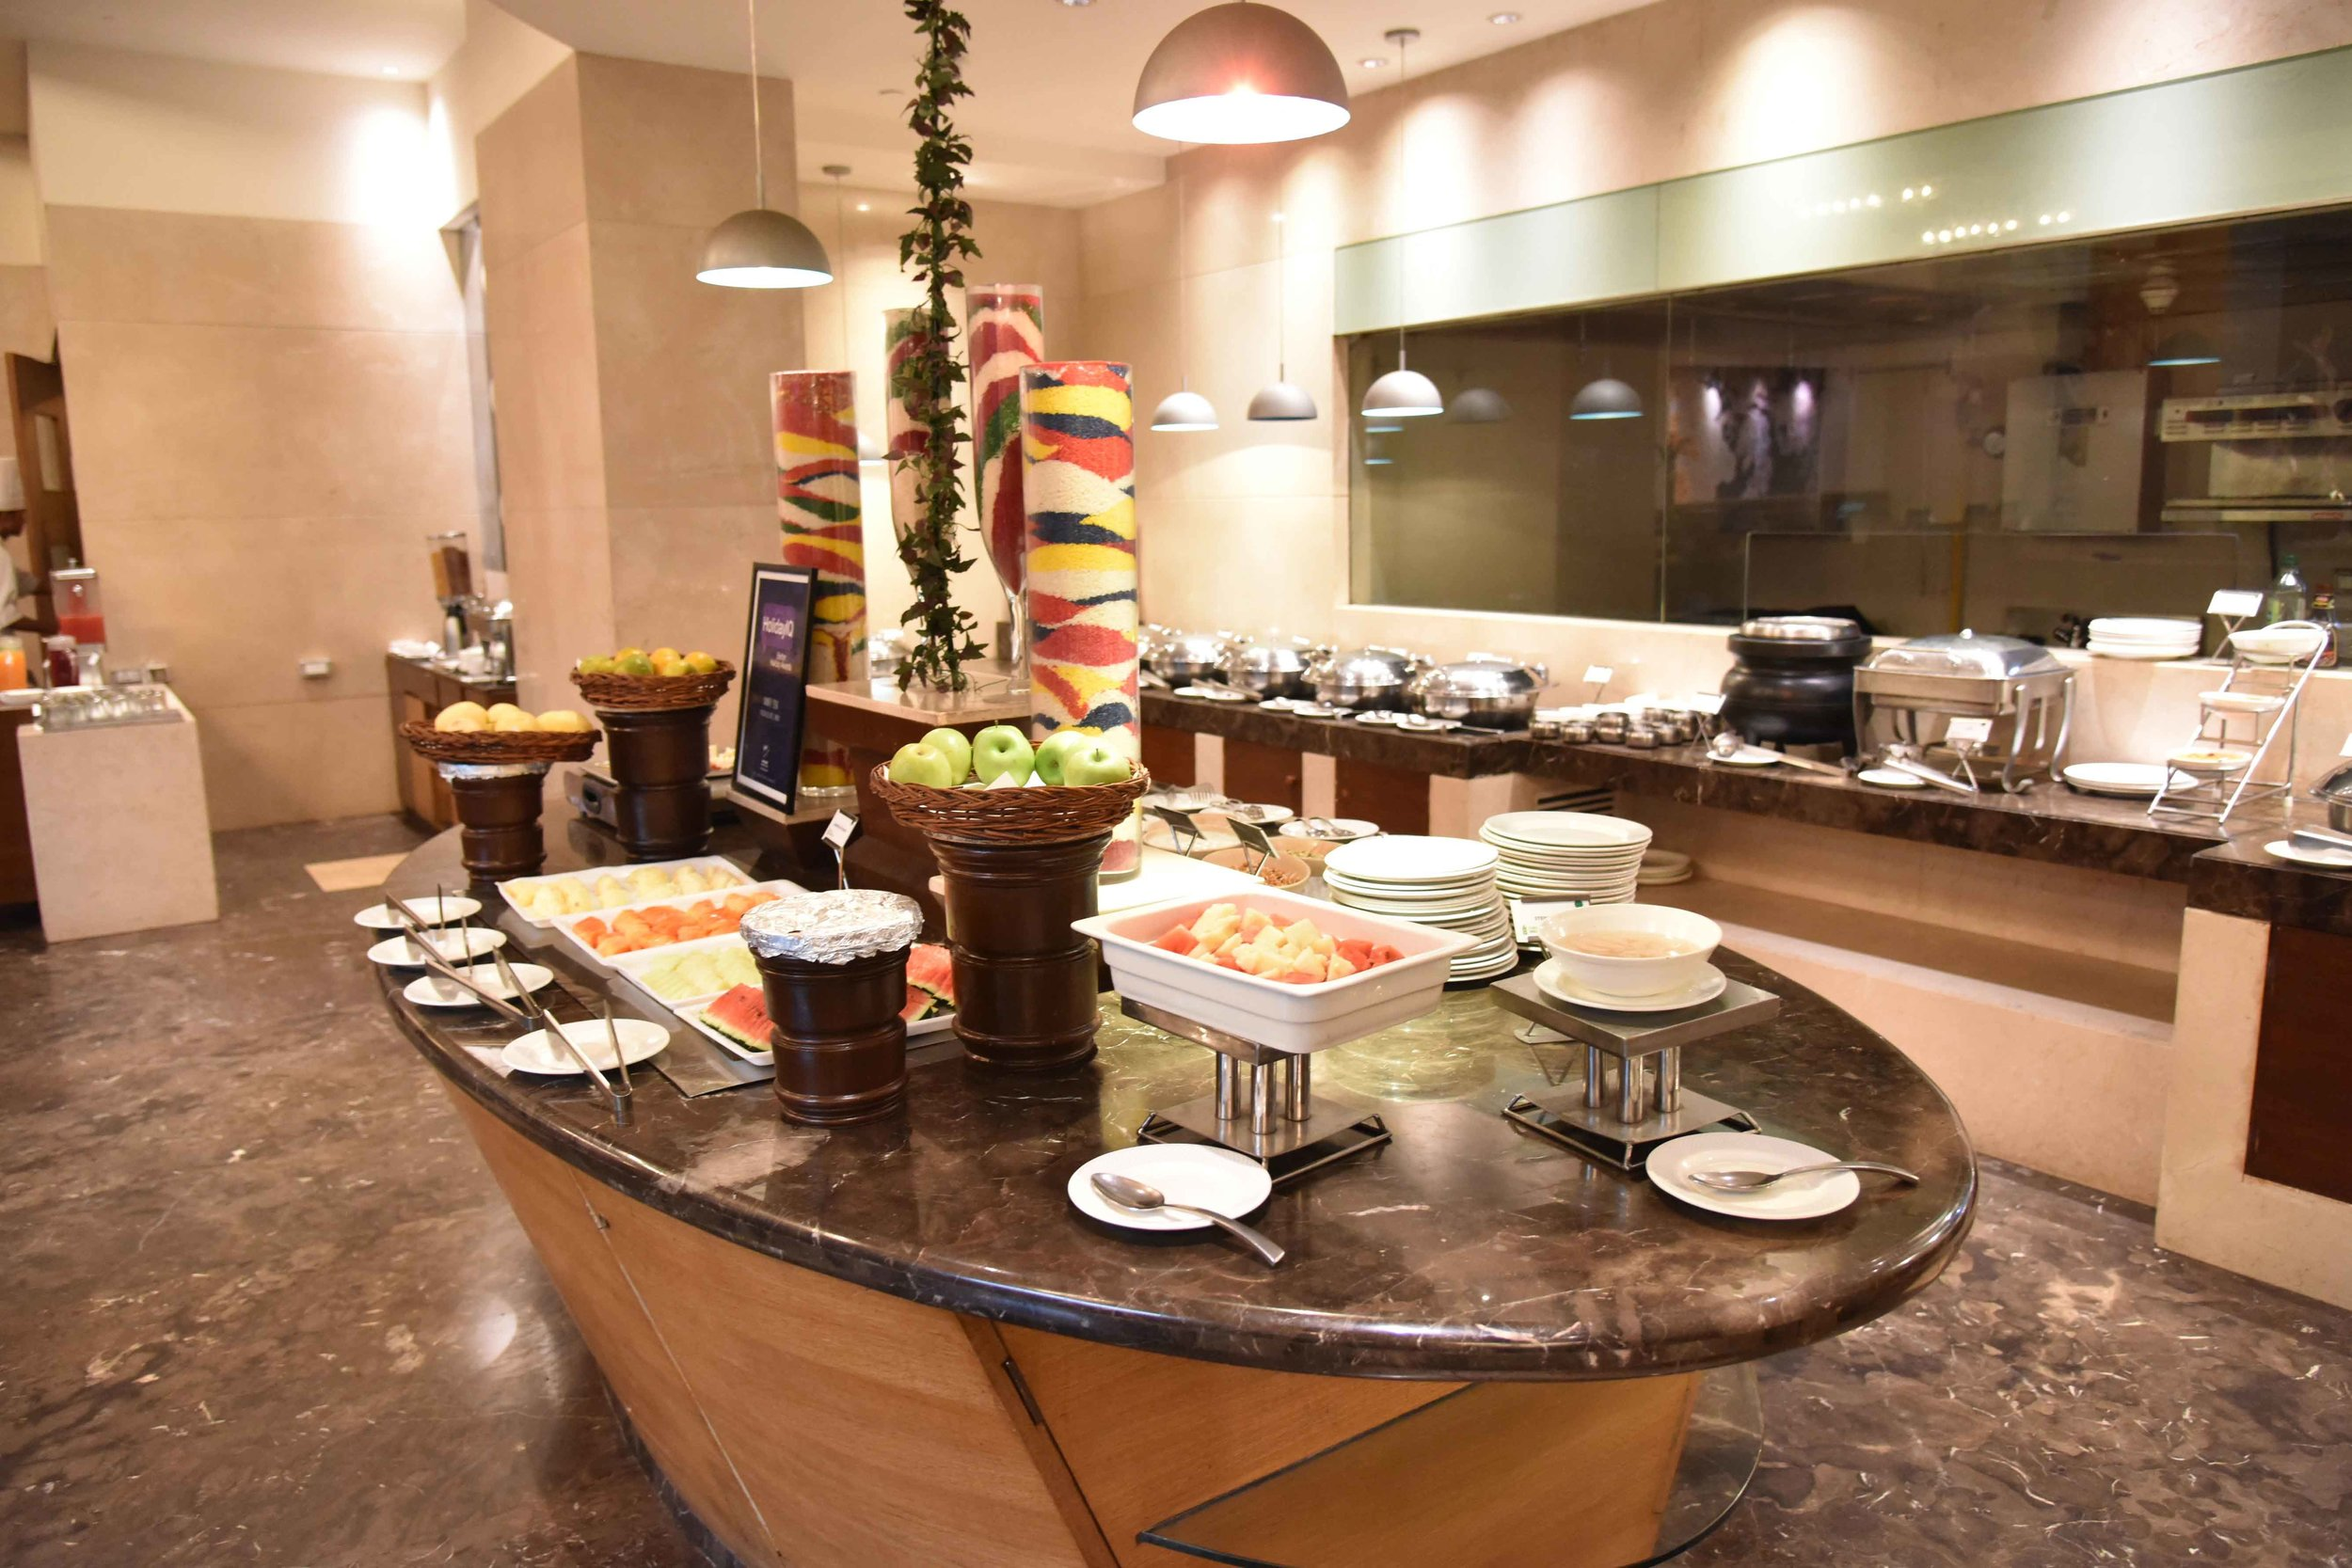 Coffee shop, Radisson Blu Hotel, Ranchi, India. Image@thingstodot.com